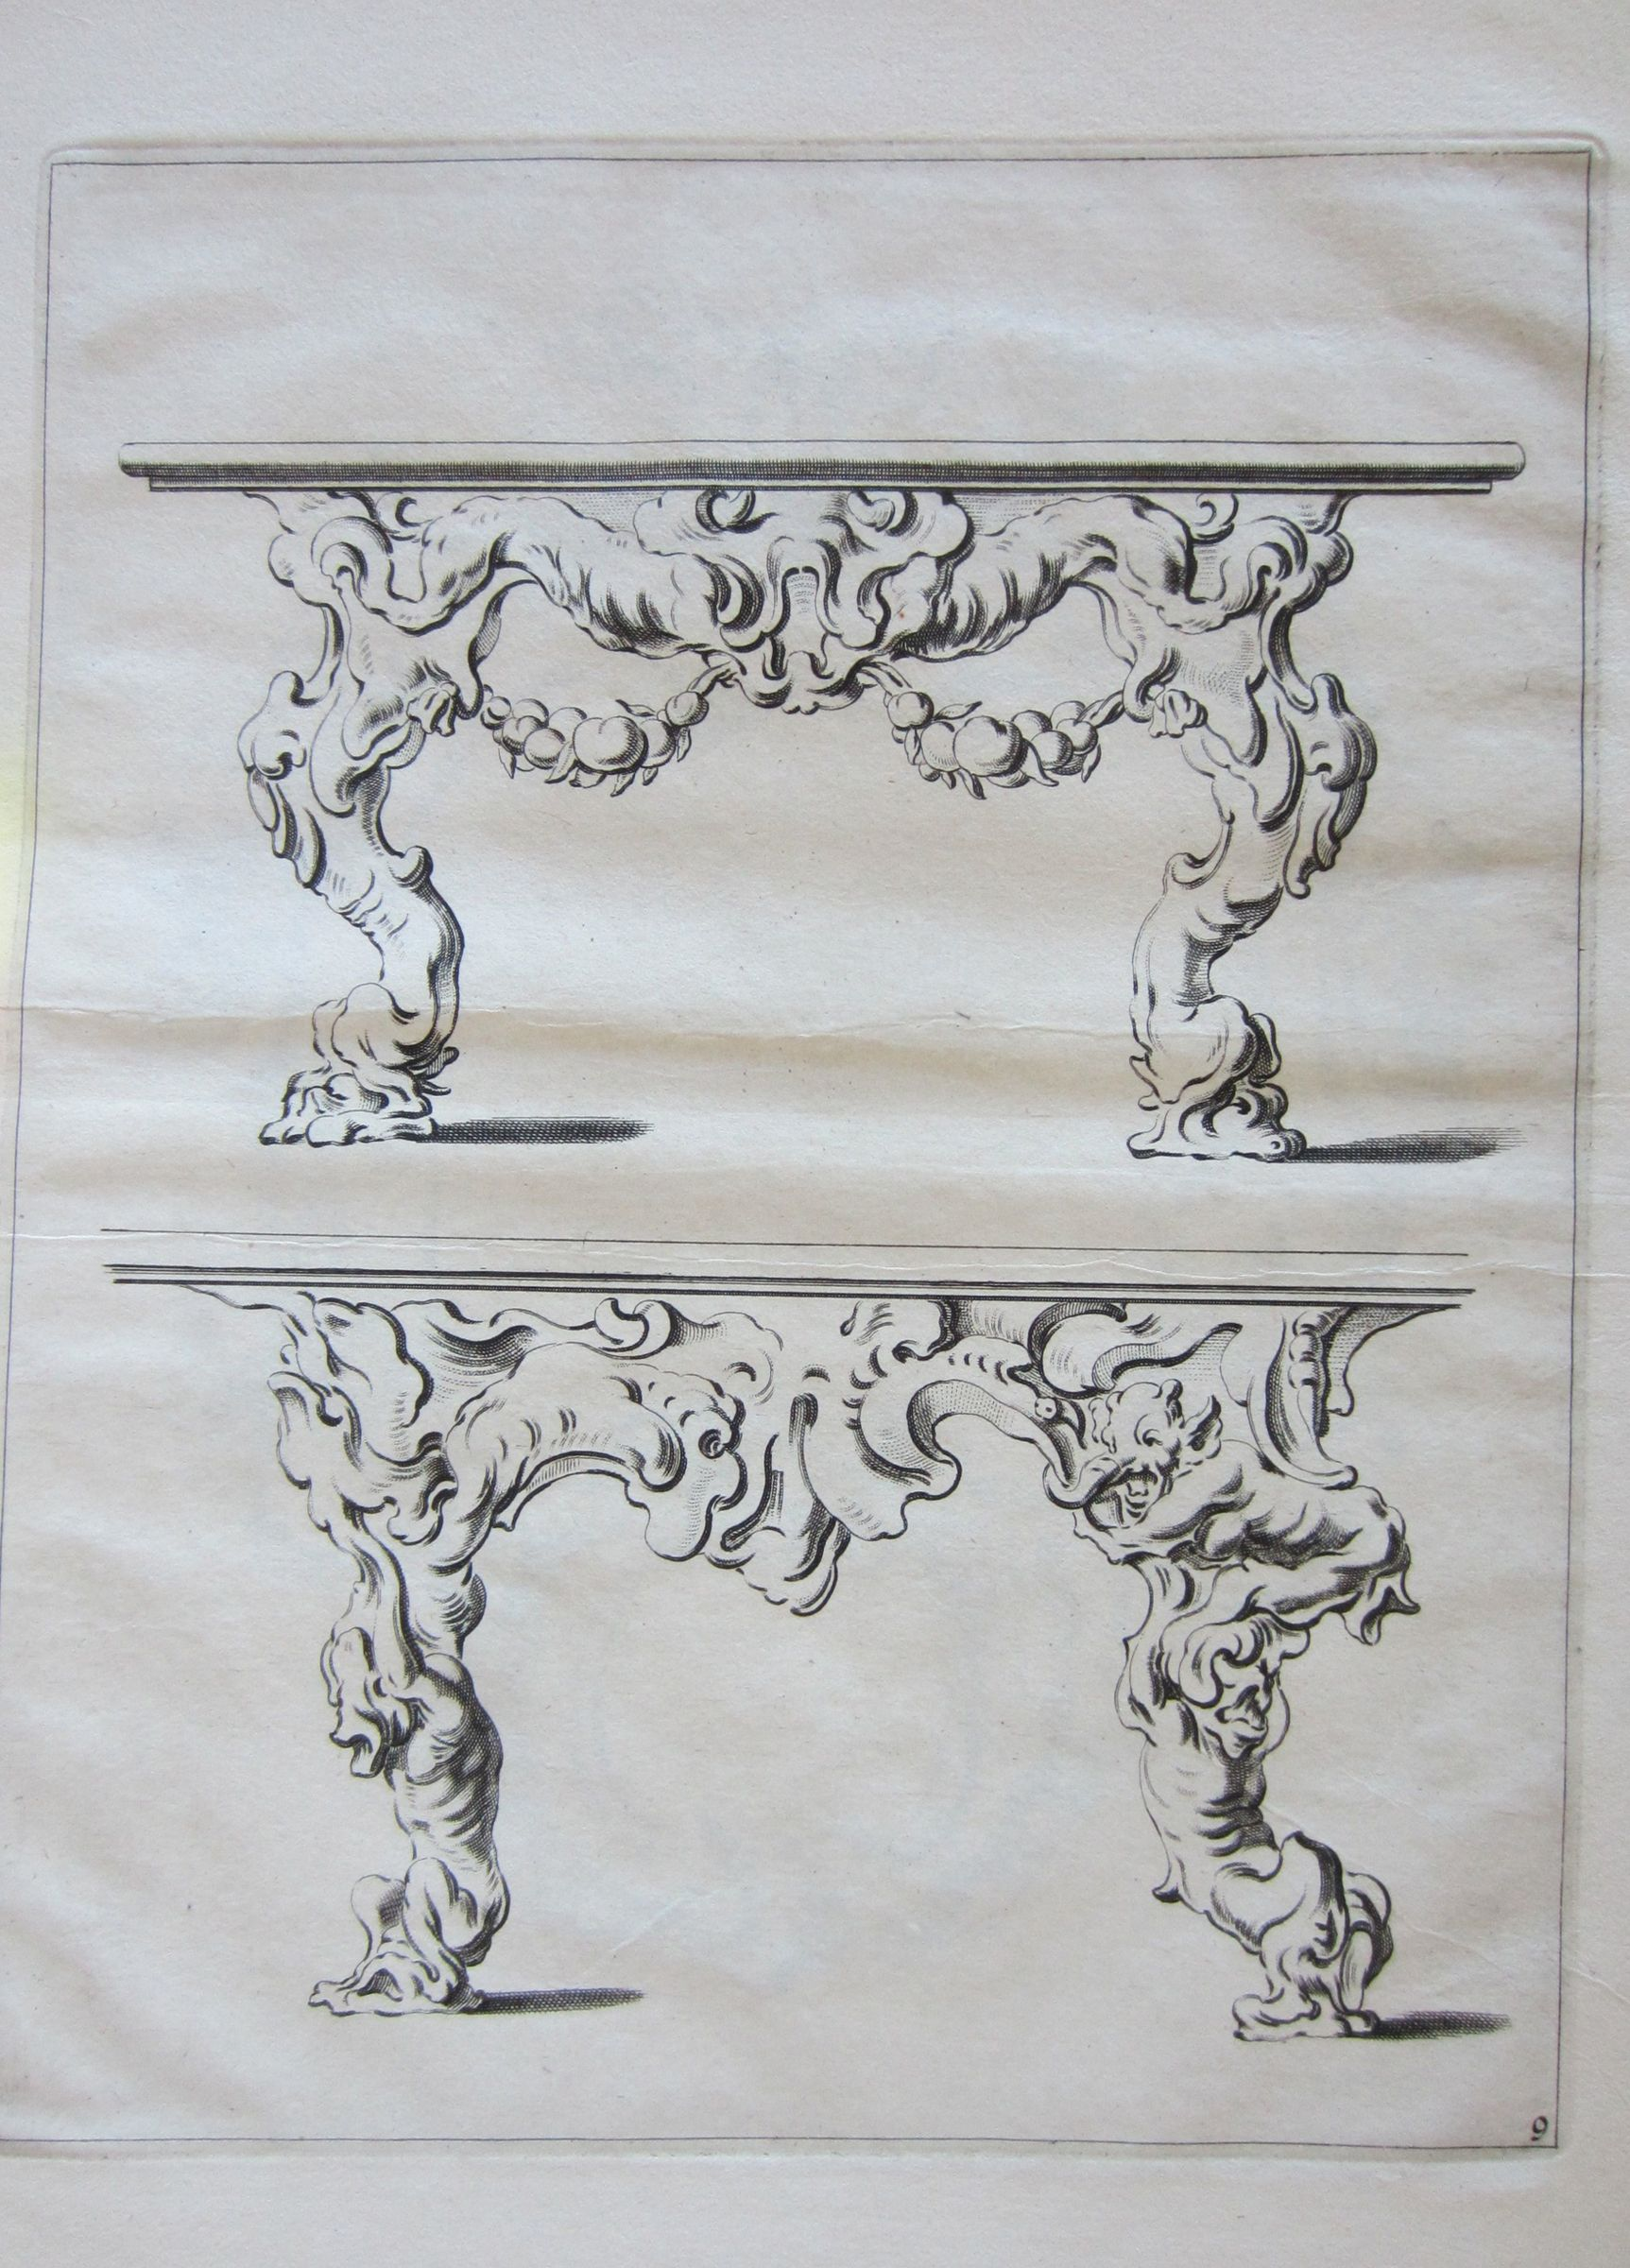 Auricular Designs For Two Tables, The Upper With Fruit Garlands, The Lower With Muscular Figures As Legs